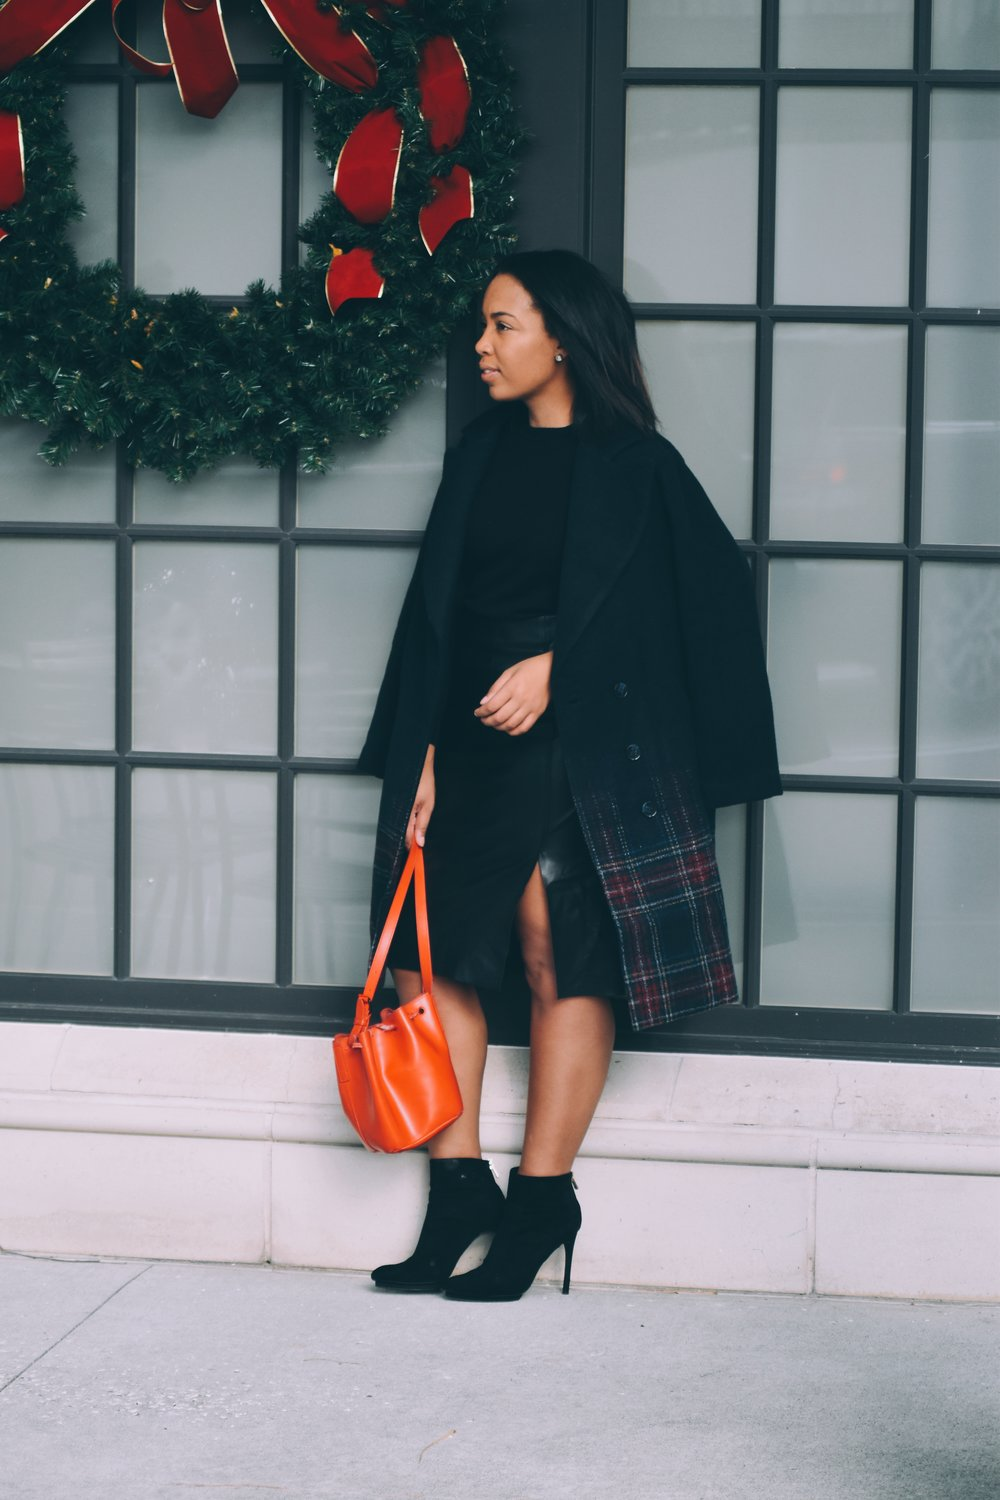 5-asos-plaid-ombre-coat-LOFT-leather-pencil-skirt-zara-platform-booties-gap-merino-wool-crewneck-sweater-fall-womens-fashion-holiday-fashion.JPG